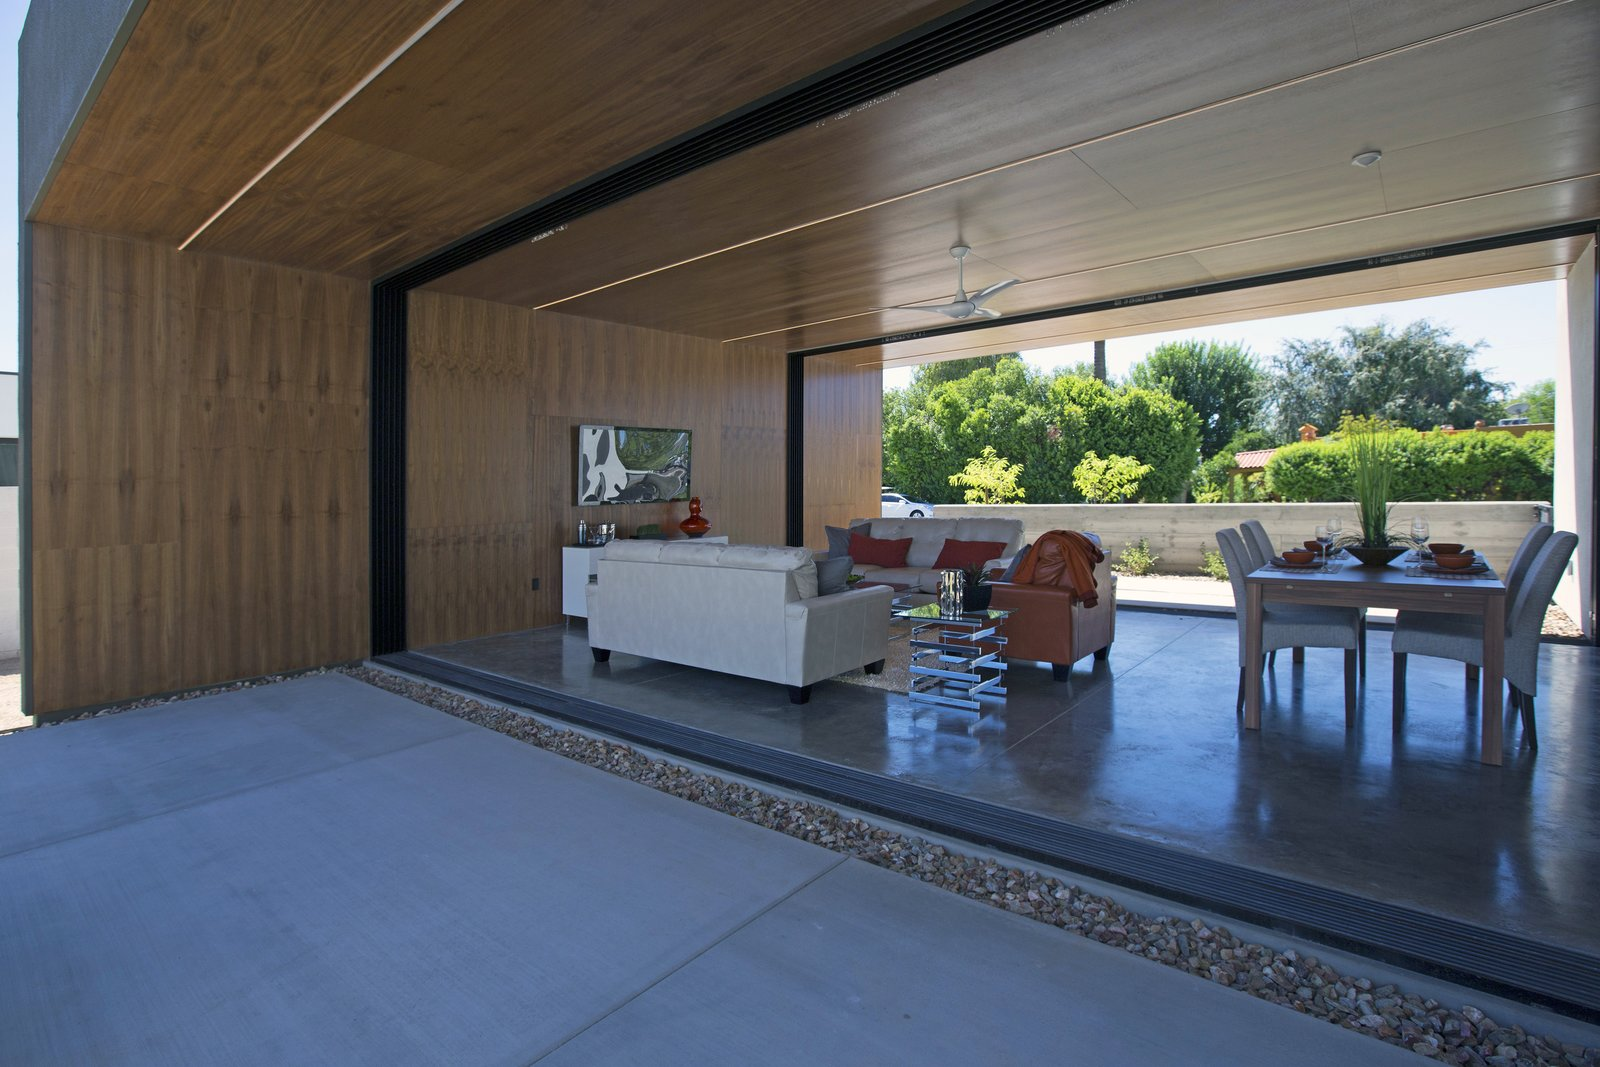 #modern #minimal #indooroutdoor #phoenix #arizona Tagged: Trees, Back Yard, Concrete Patio, Porch, Deck, Ceiling Lighting, Concrete Floor, Grass, and Living Room.  Best Photos from Glass Walls • Windows • Sliding Walls